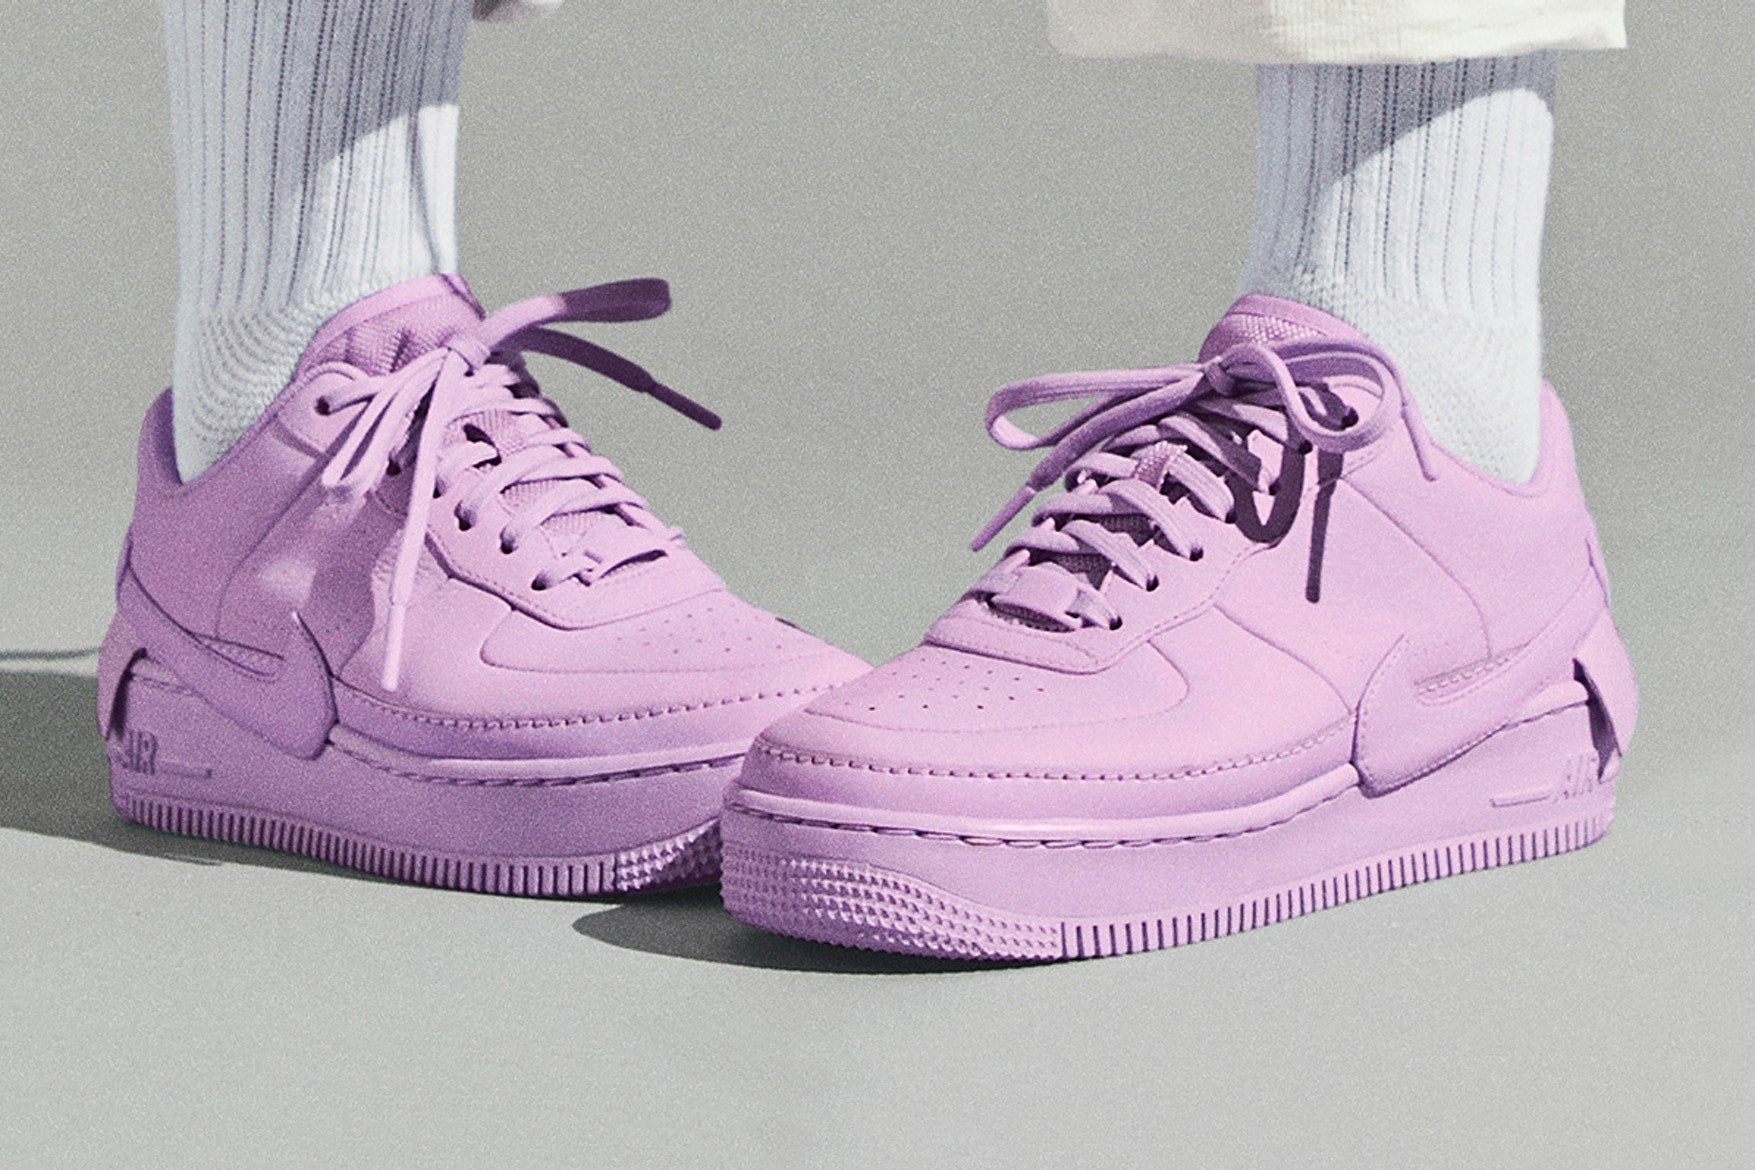 f7f25fb7bd6bf The Nike Air Force 1 Low  JESTER XX  in Violet Mist available at Galeries  Womens